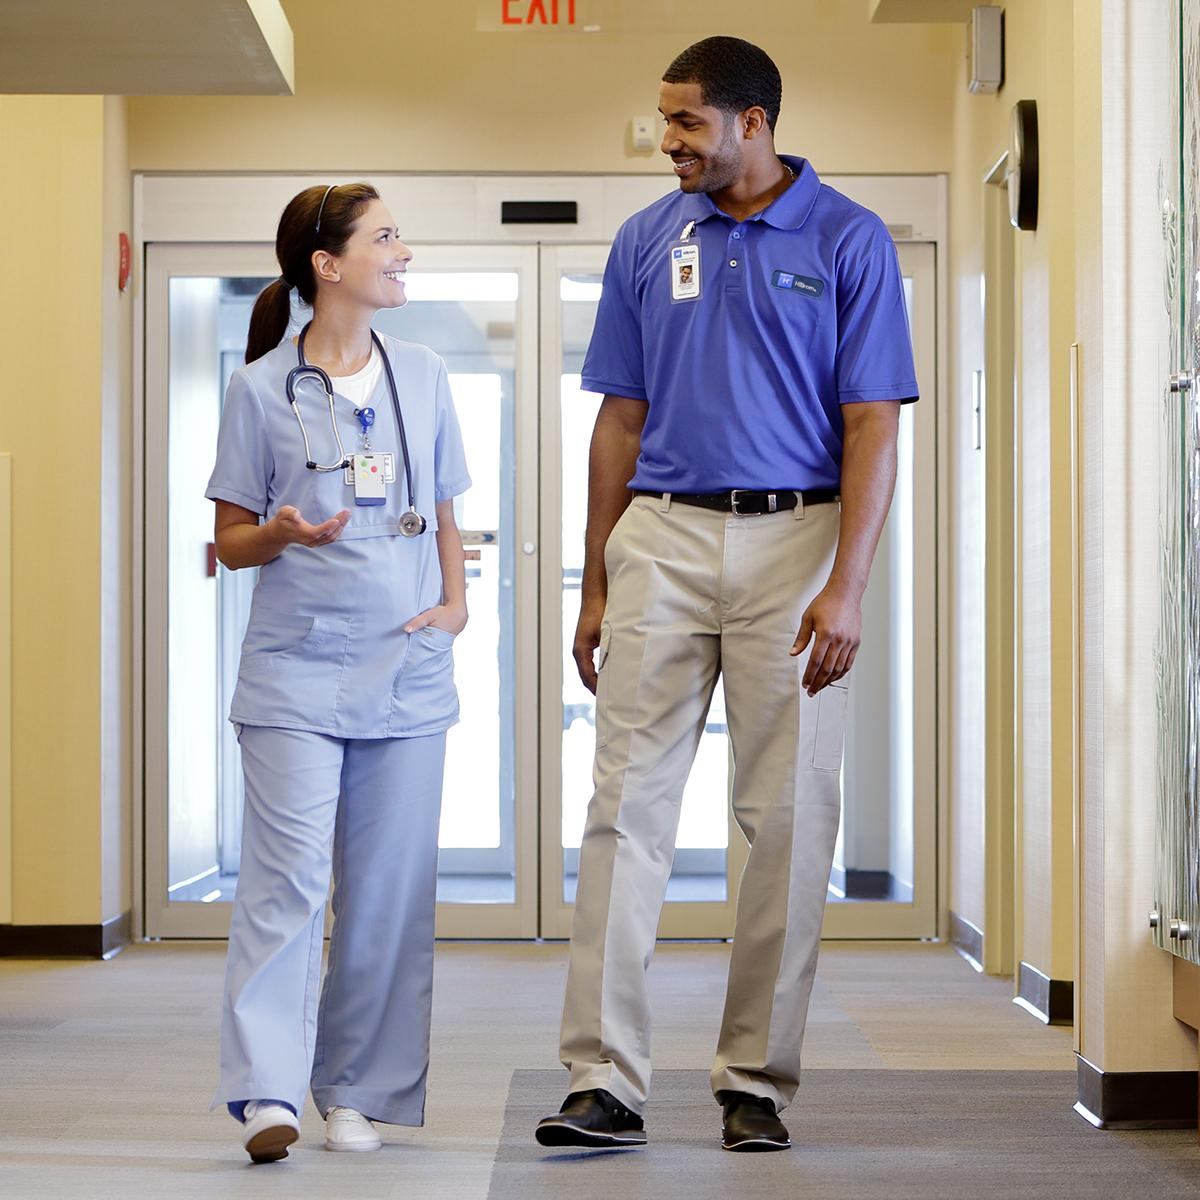 Nurse and Hillrom technician interacting in a hospital hallway